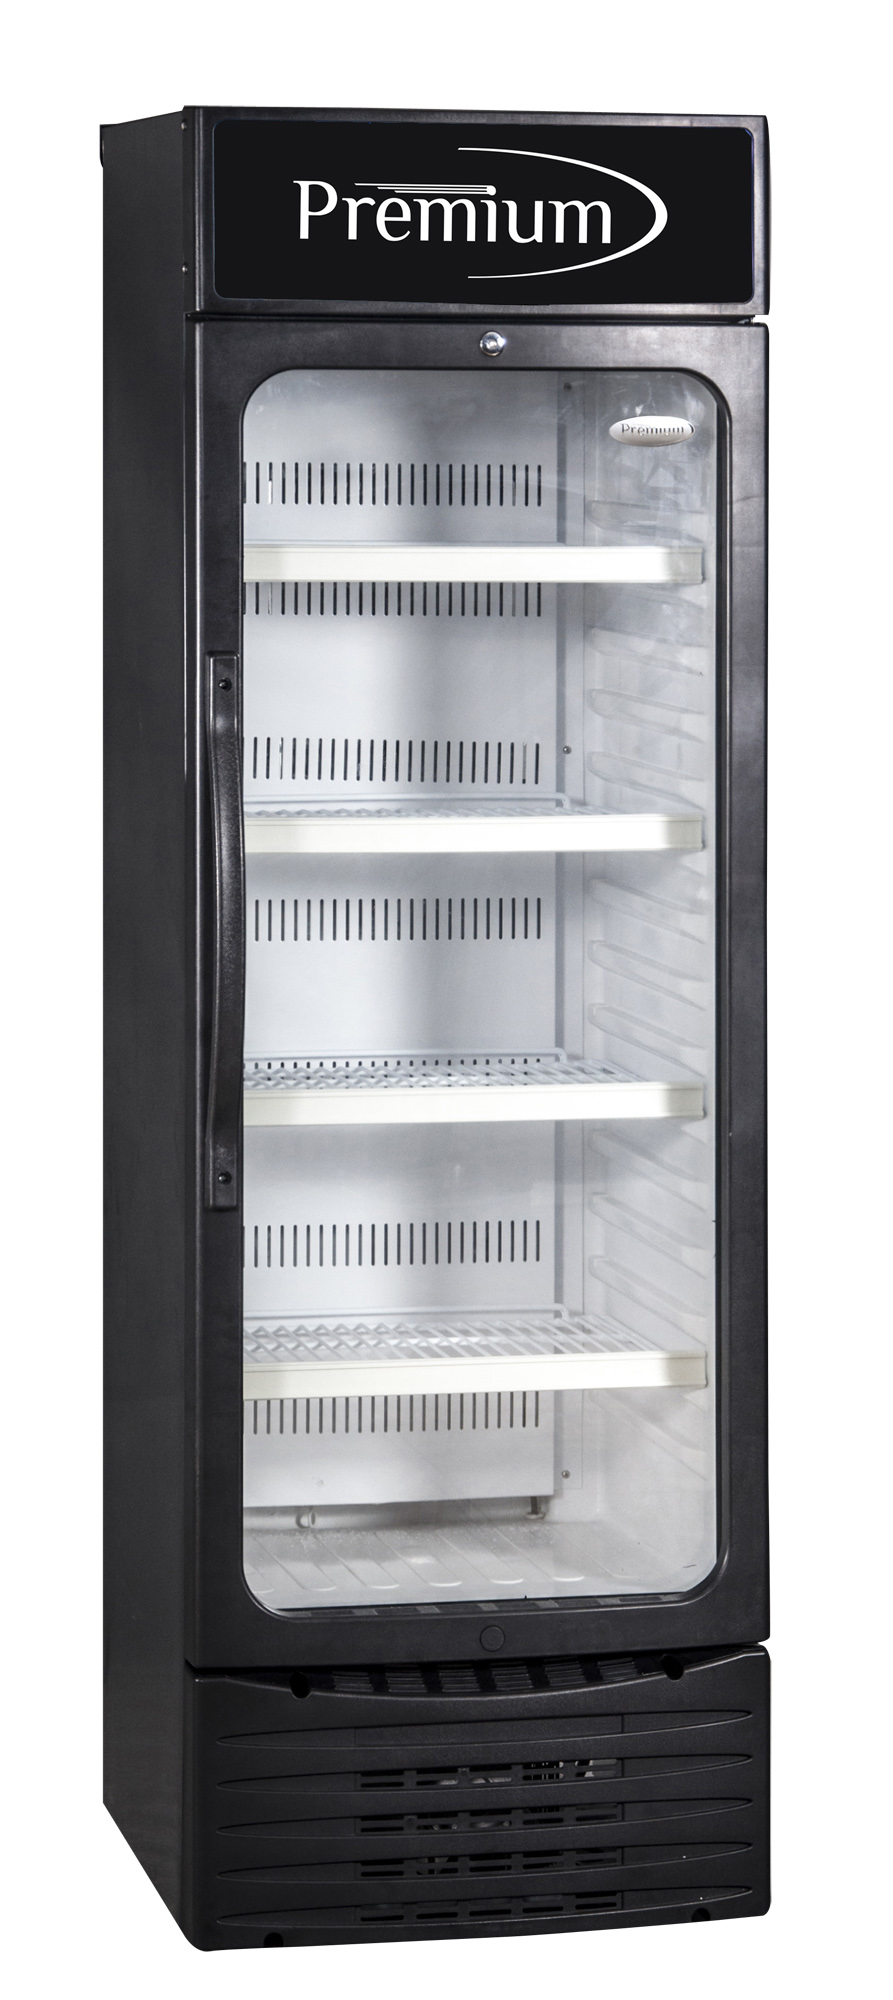 Premium Appliances 12 Ft 179 Vertical Refrigerator Display